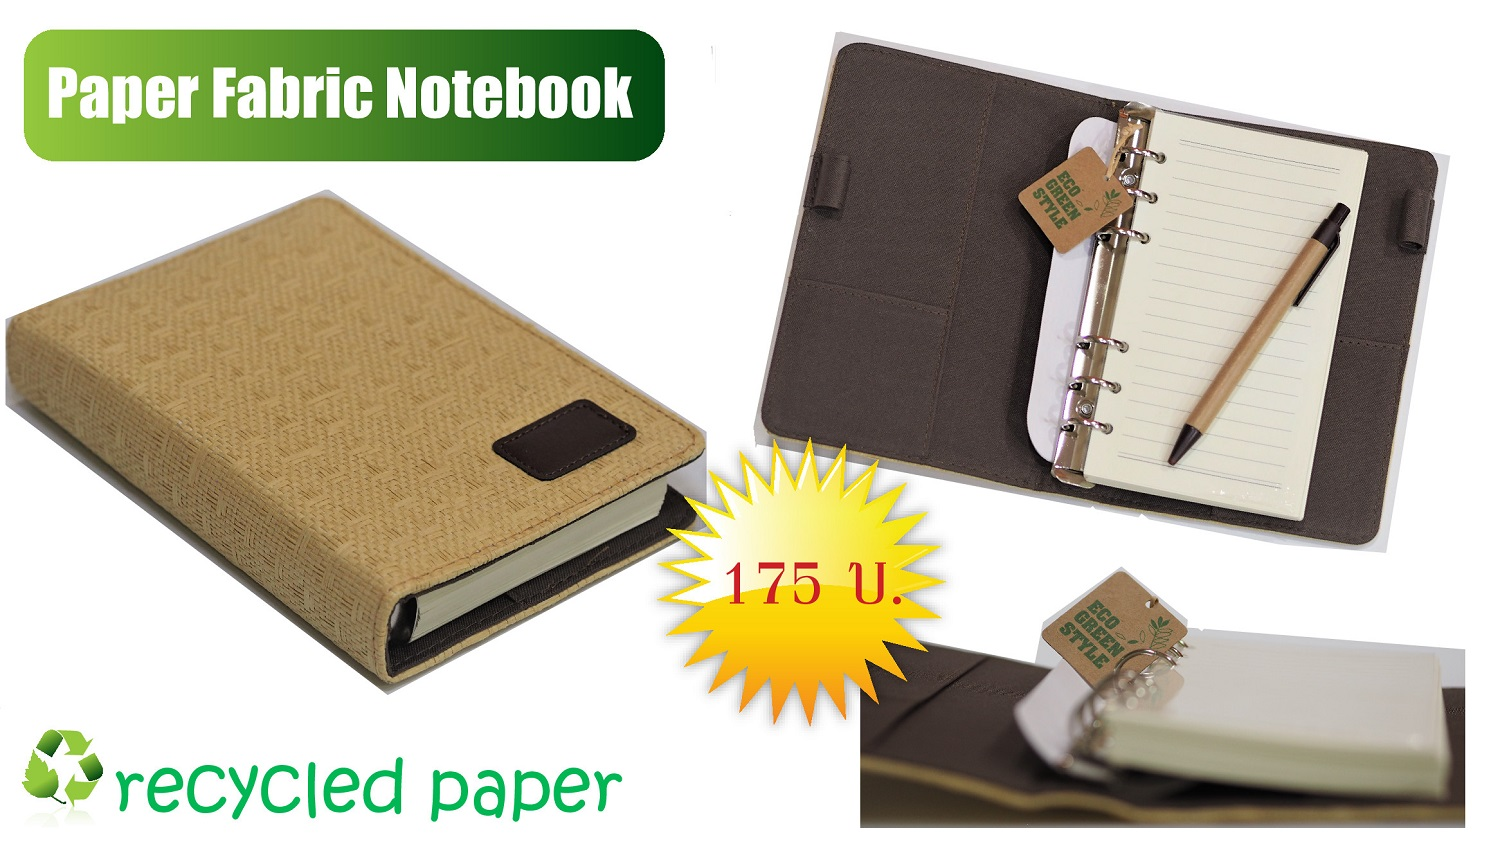 Paper Fabric Notebook